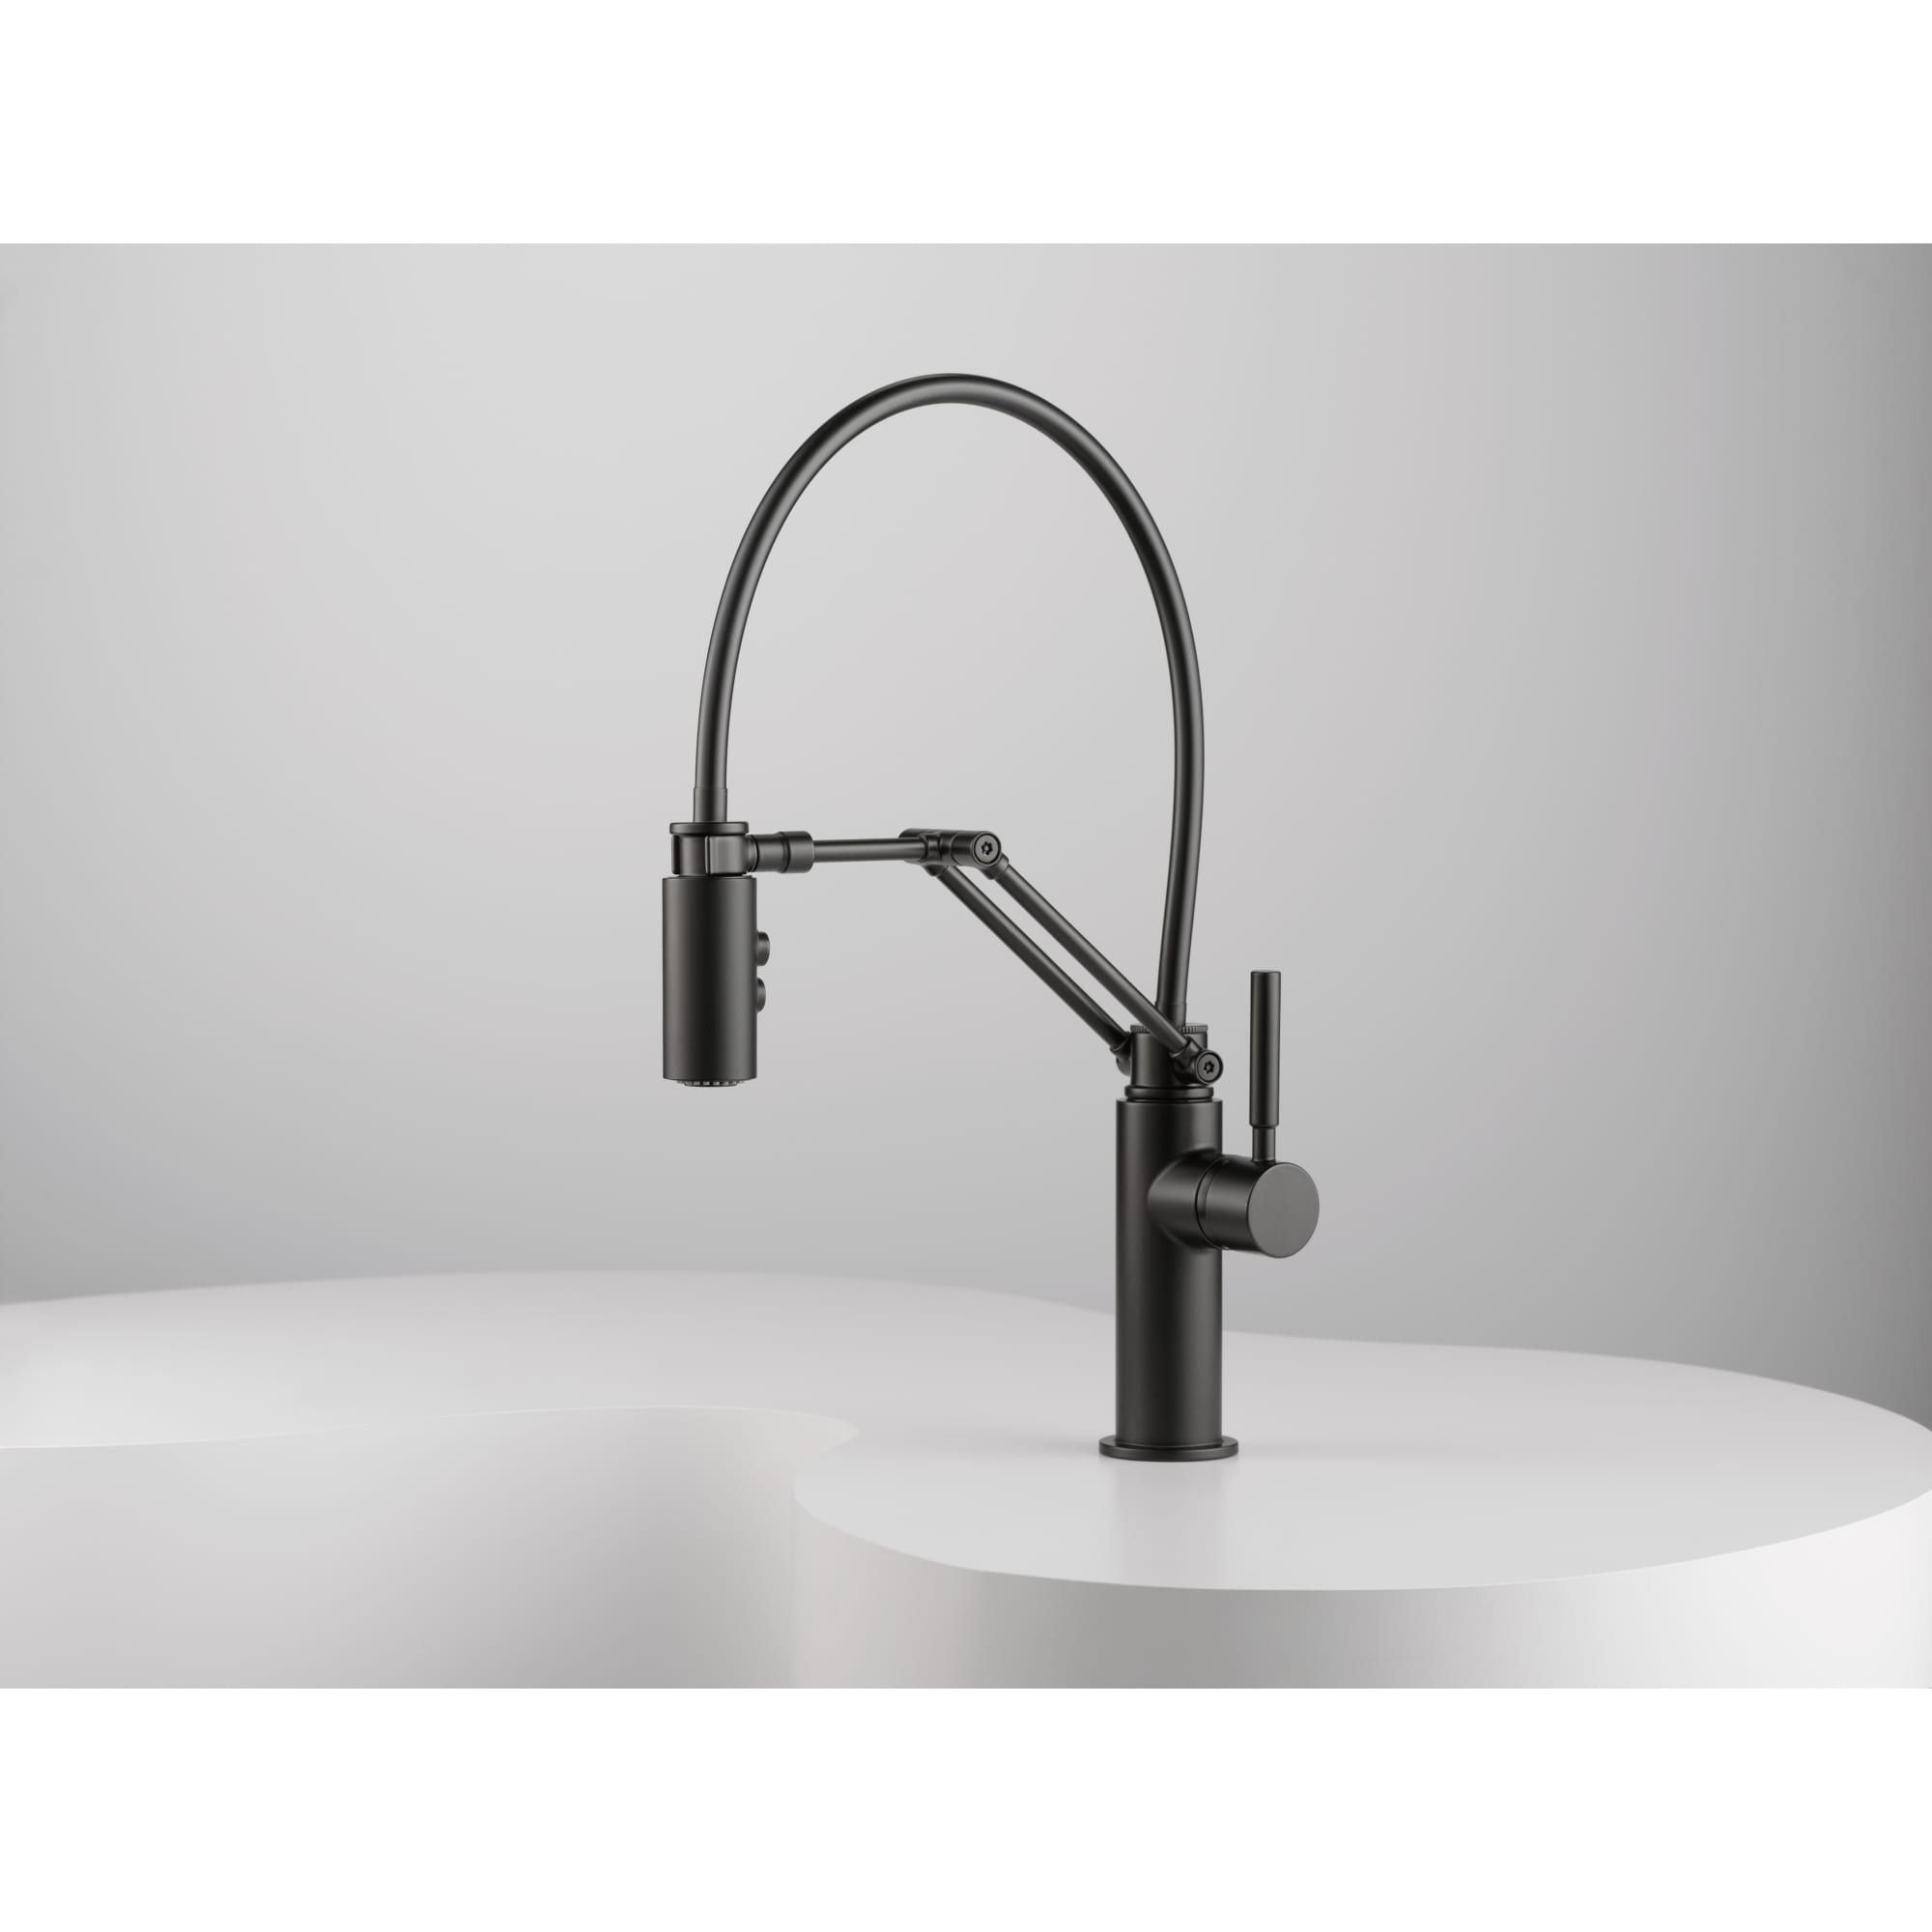 collection black automatic makeovers faucet single matte for solna product handle kitchen fancy brizo of finish in your faucets kraus easy